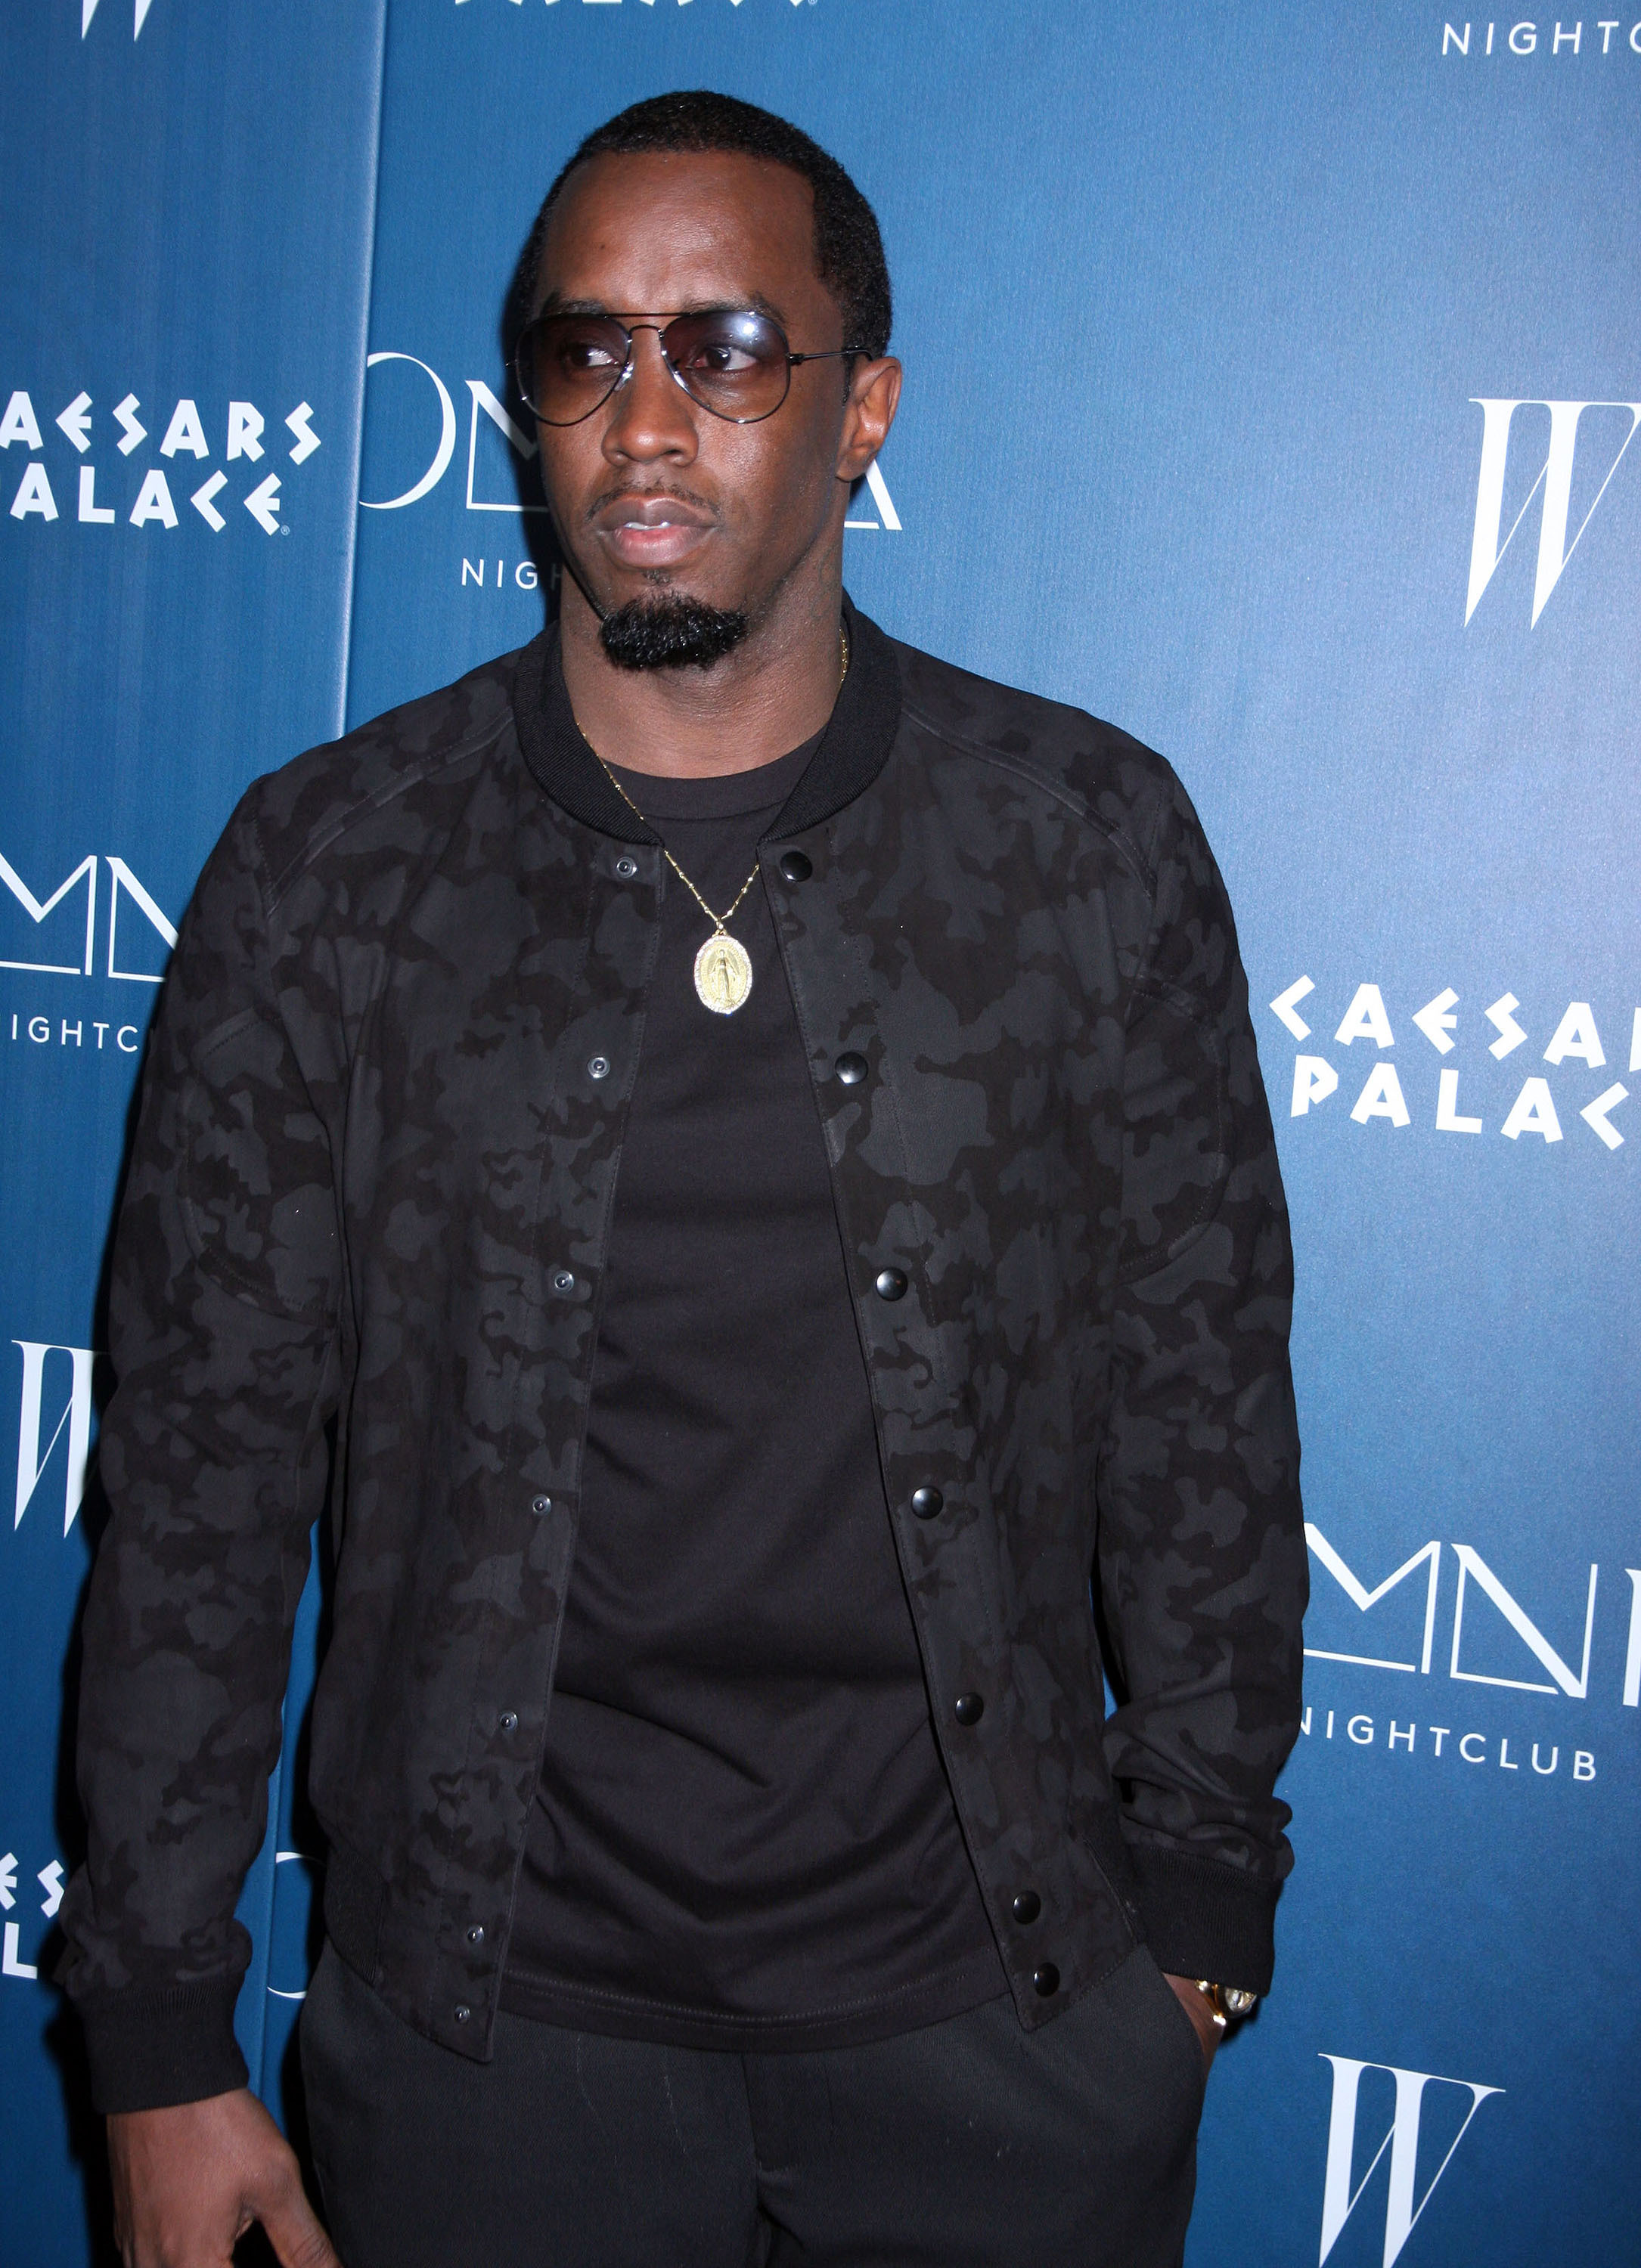 Diddy crashed a 16 year old's birthday party